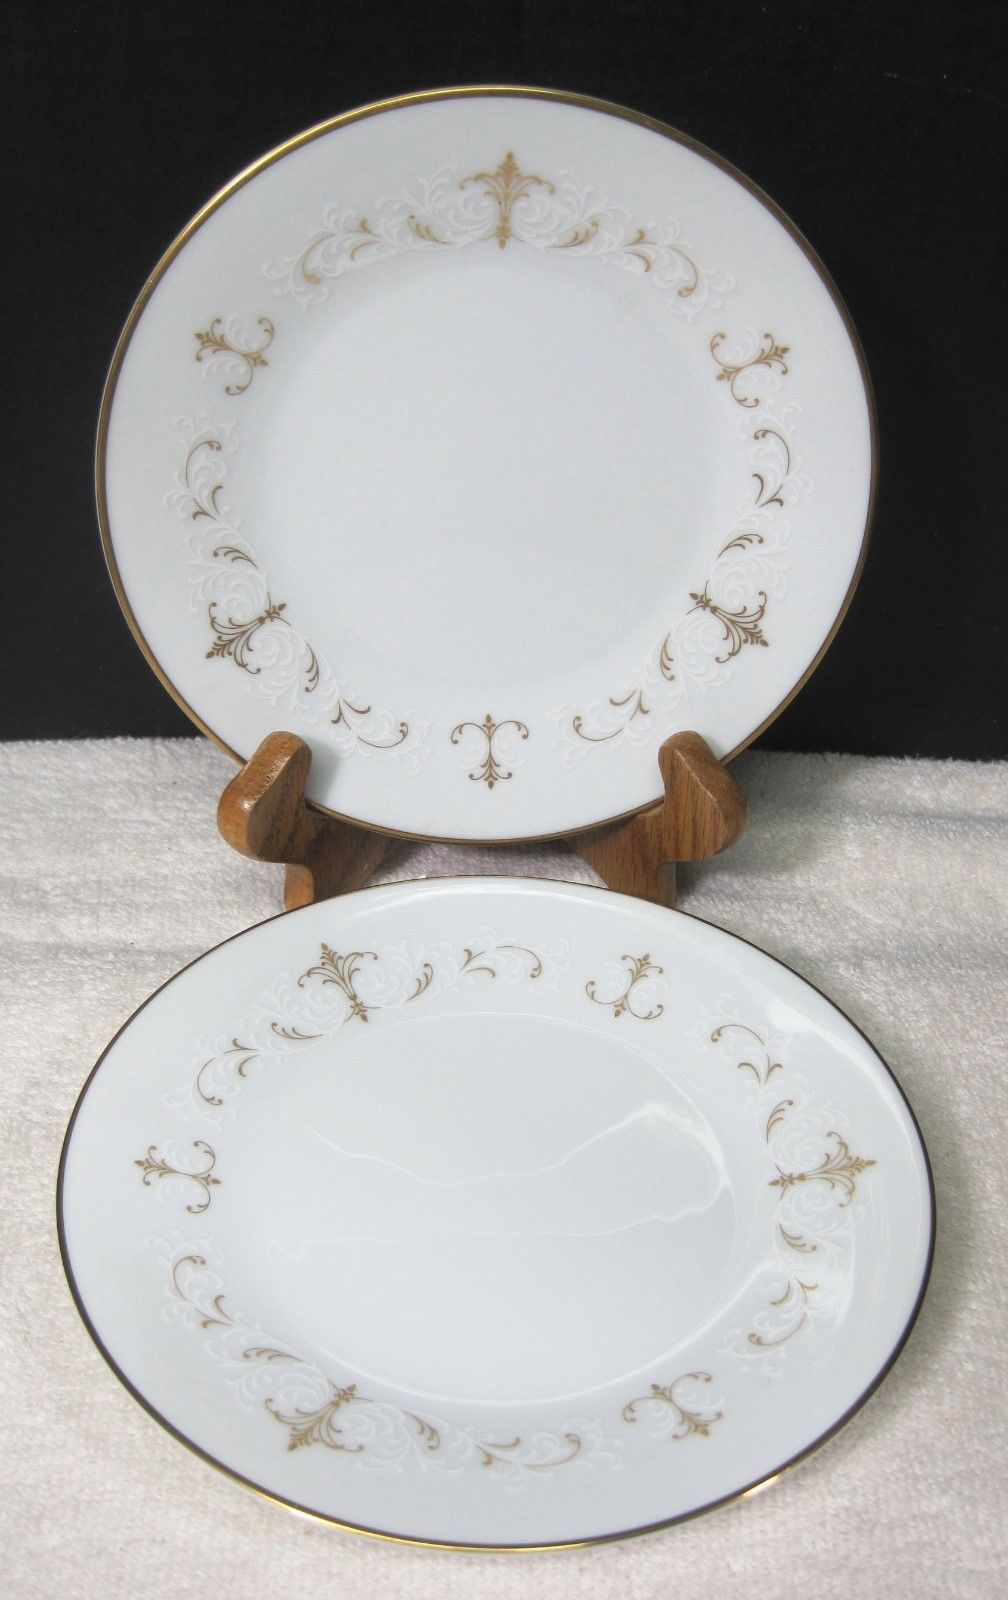 Primary image for Noritake Courtney #6520 1964-1980 Gold White Scroll Bread Butter Cake Plate 2PC